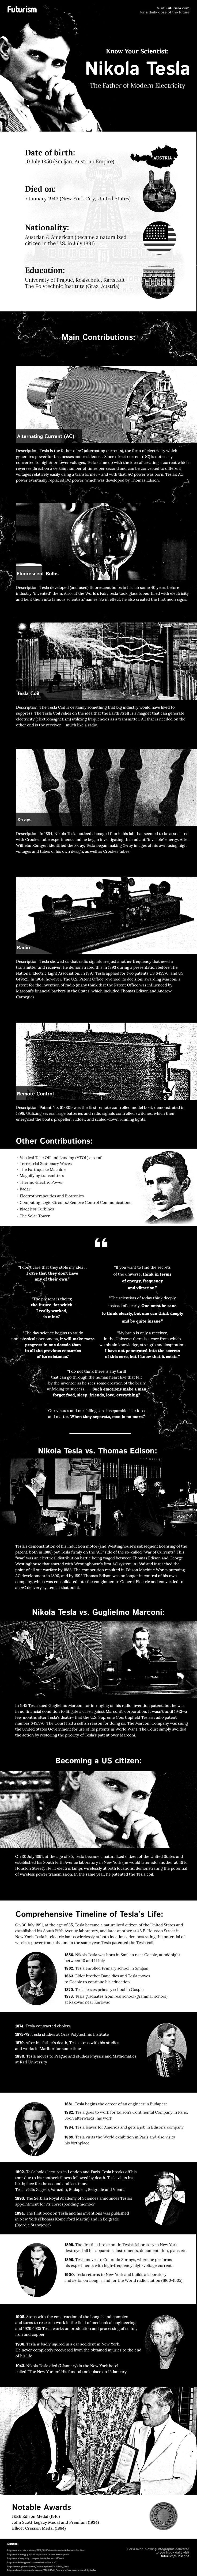 Nikola Tesla Infographic  (Mira M Nikola Tesla was Serbian, born in Croatia to Serbian Parents, in the country of Yugoslavia )